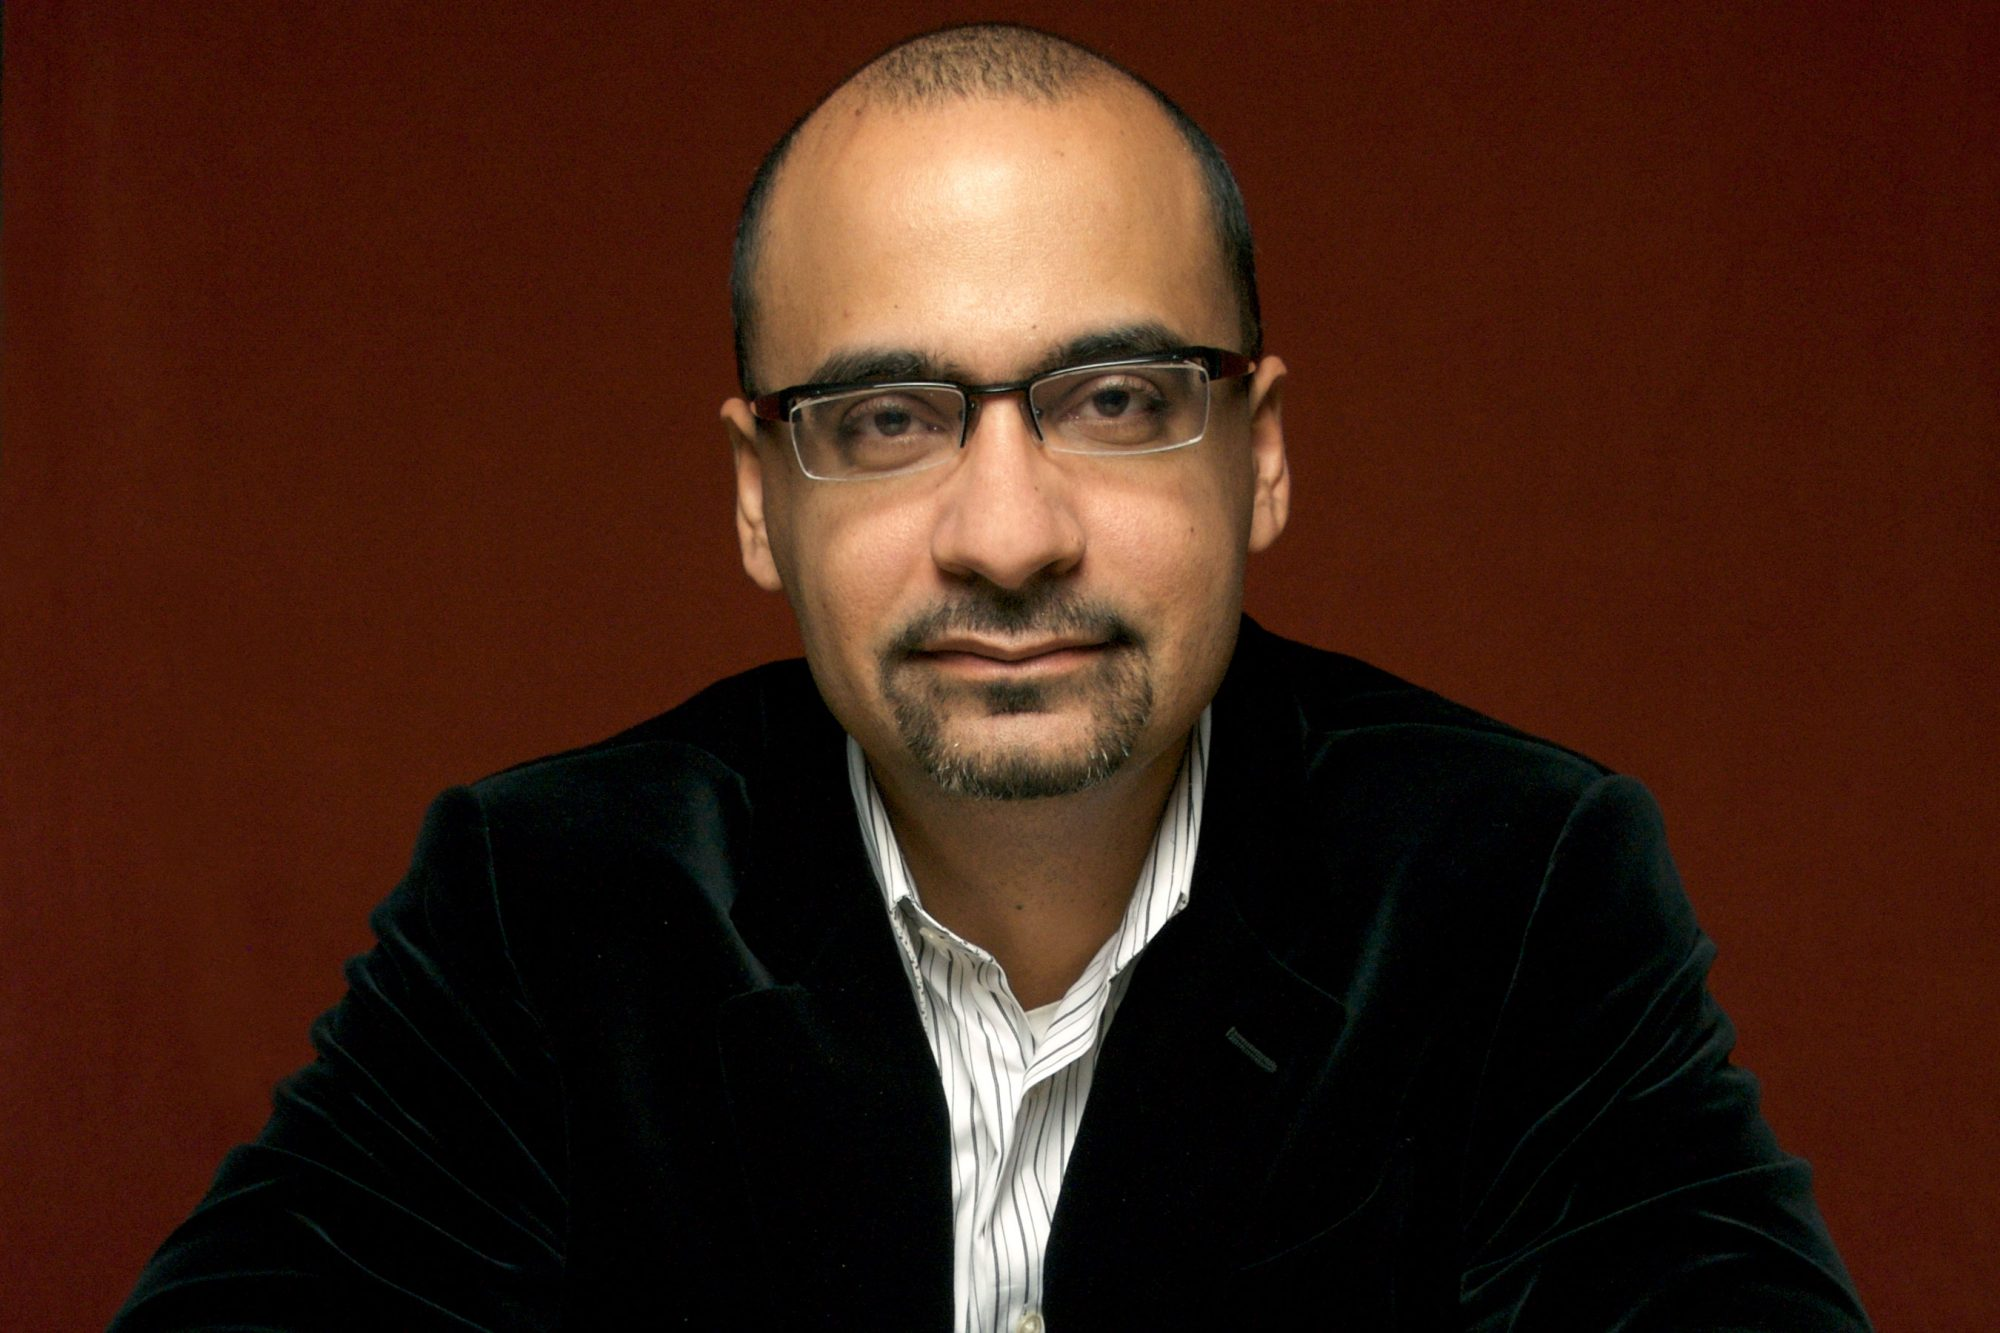 Authors by Ulf Andersen - Junot Diaz